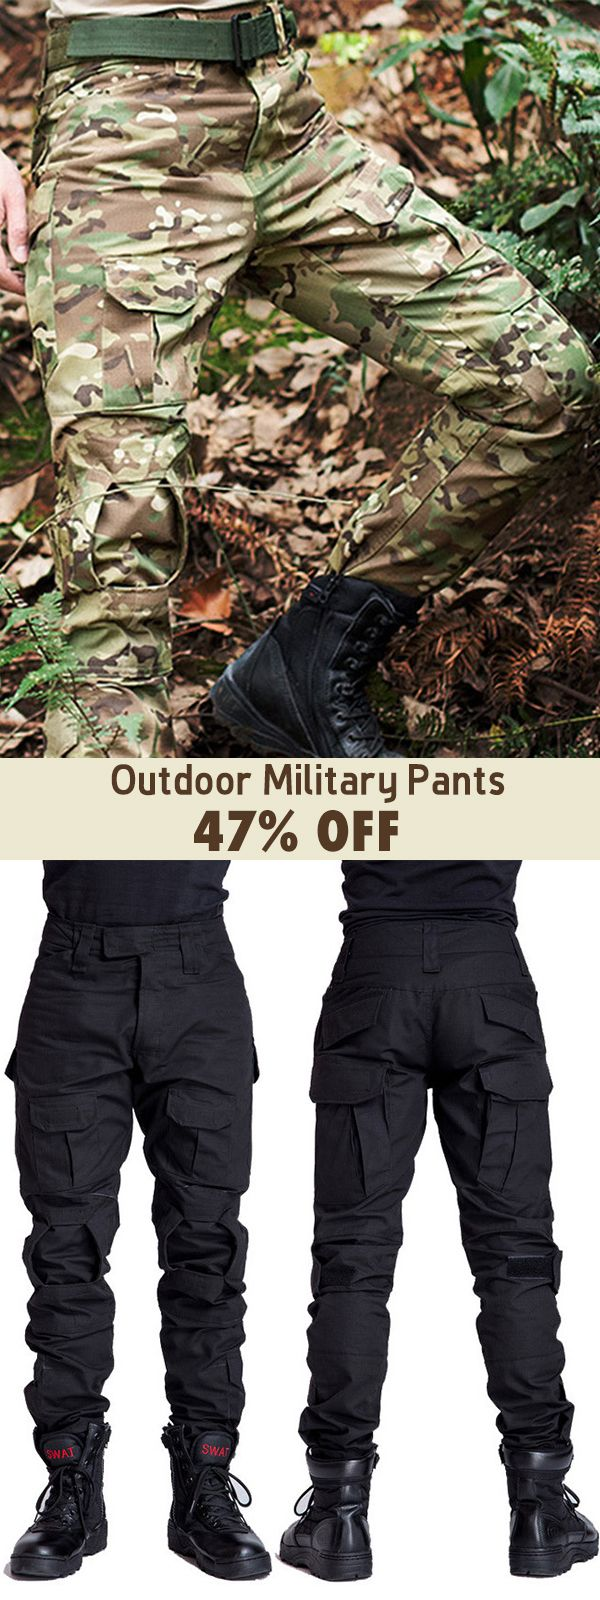 Mens Outdoor Military Tactical pants Camo Printing Breathable Wear-resistant Cas… – lian manson